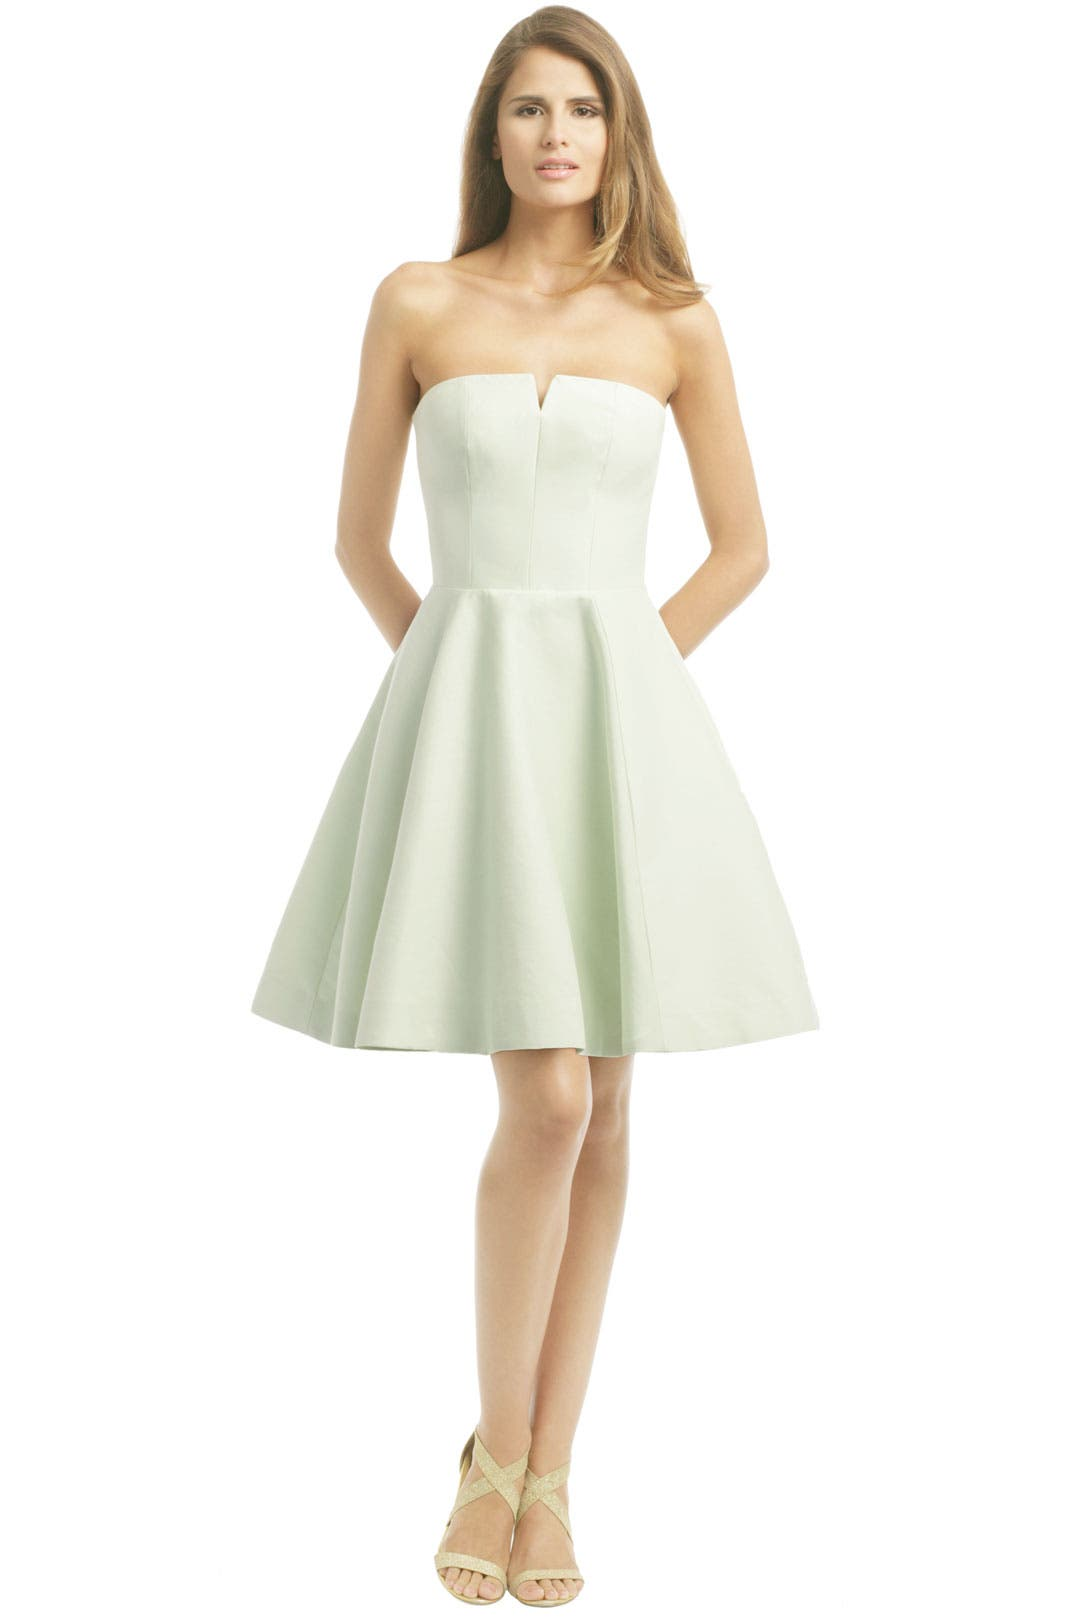 Minty Fresh Dress by Halston Heritage